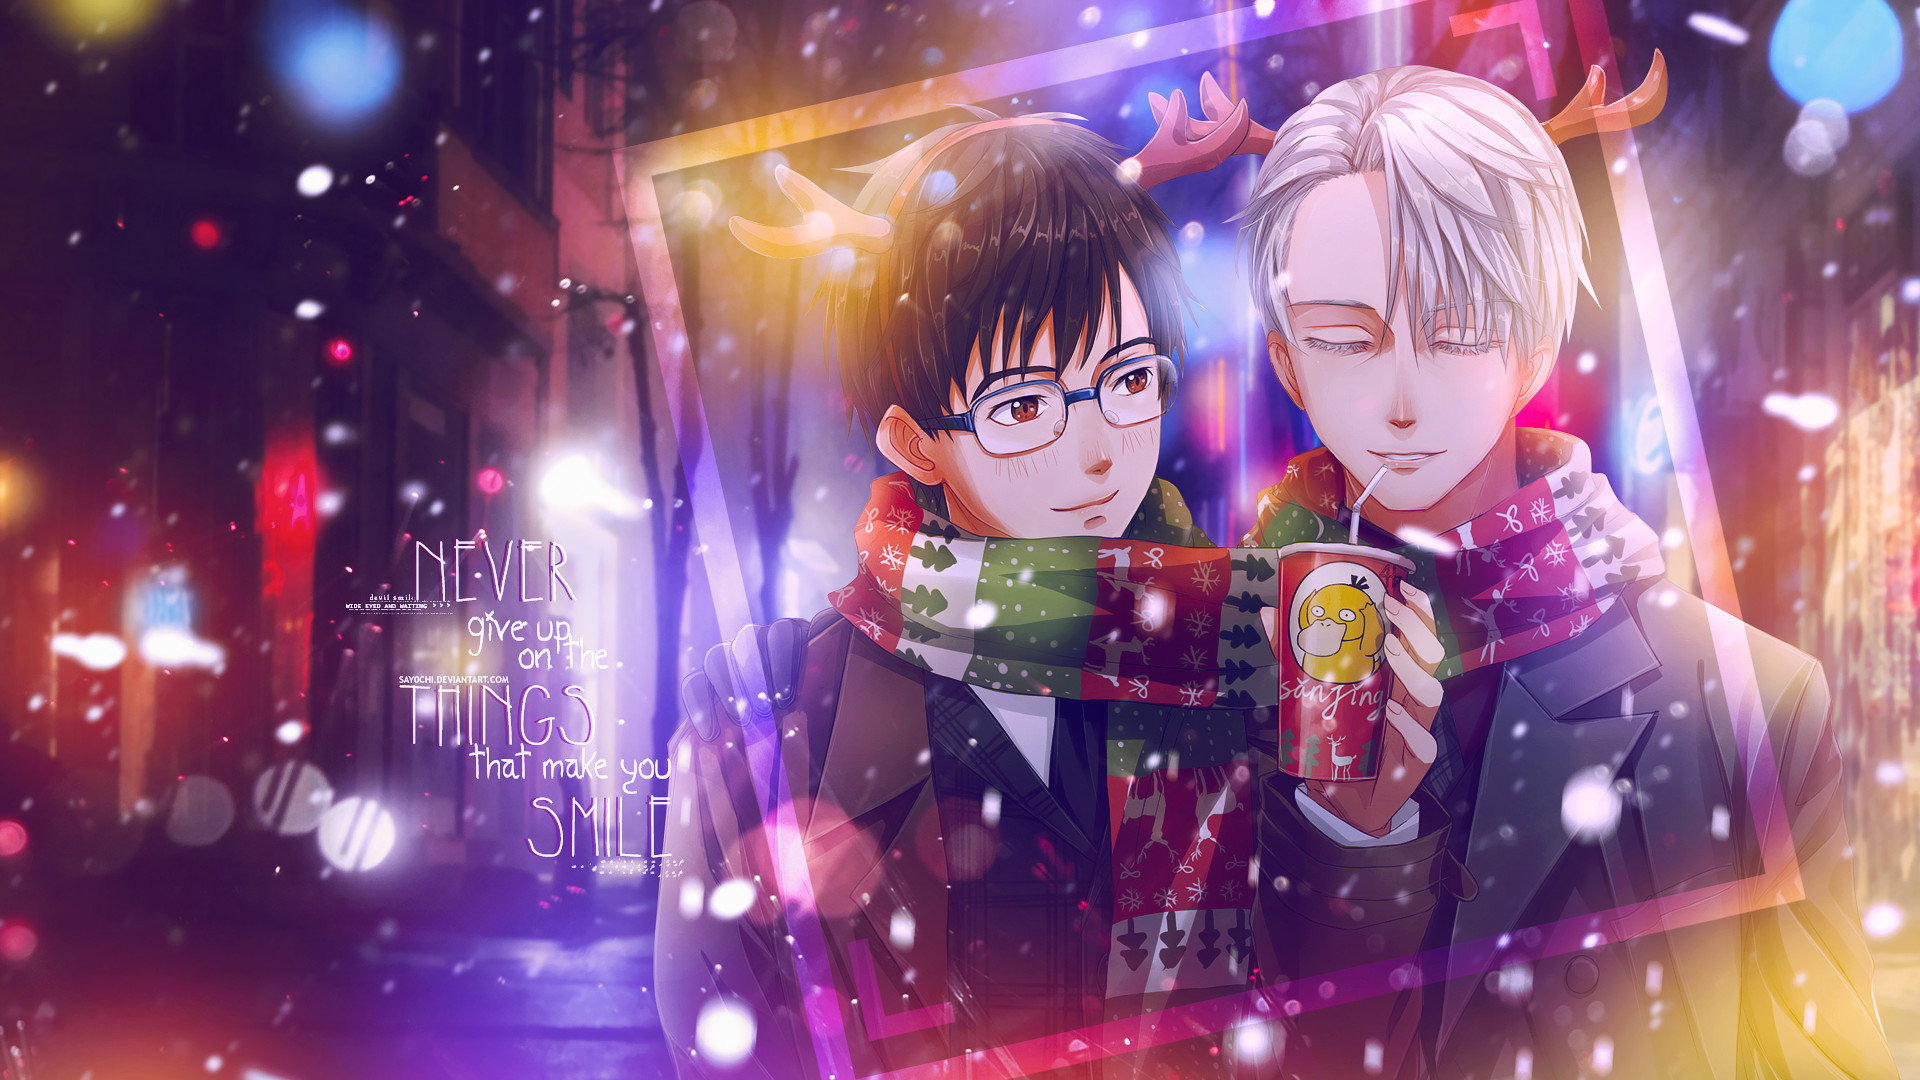 Yuri On Ice Wallpapers 1920x1080 Full Hd 1080p Desktop Backgrounds